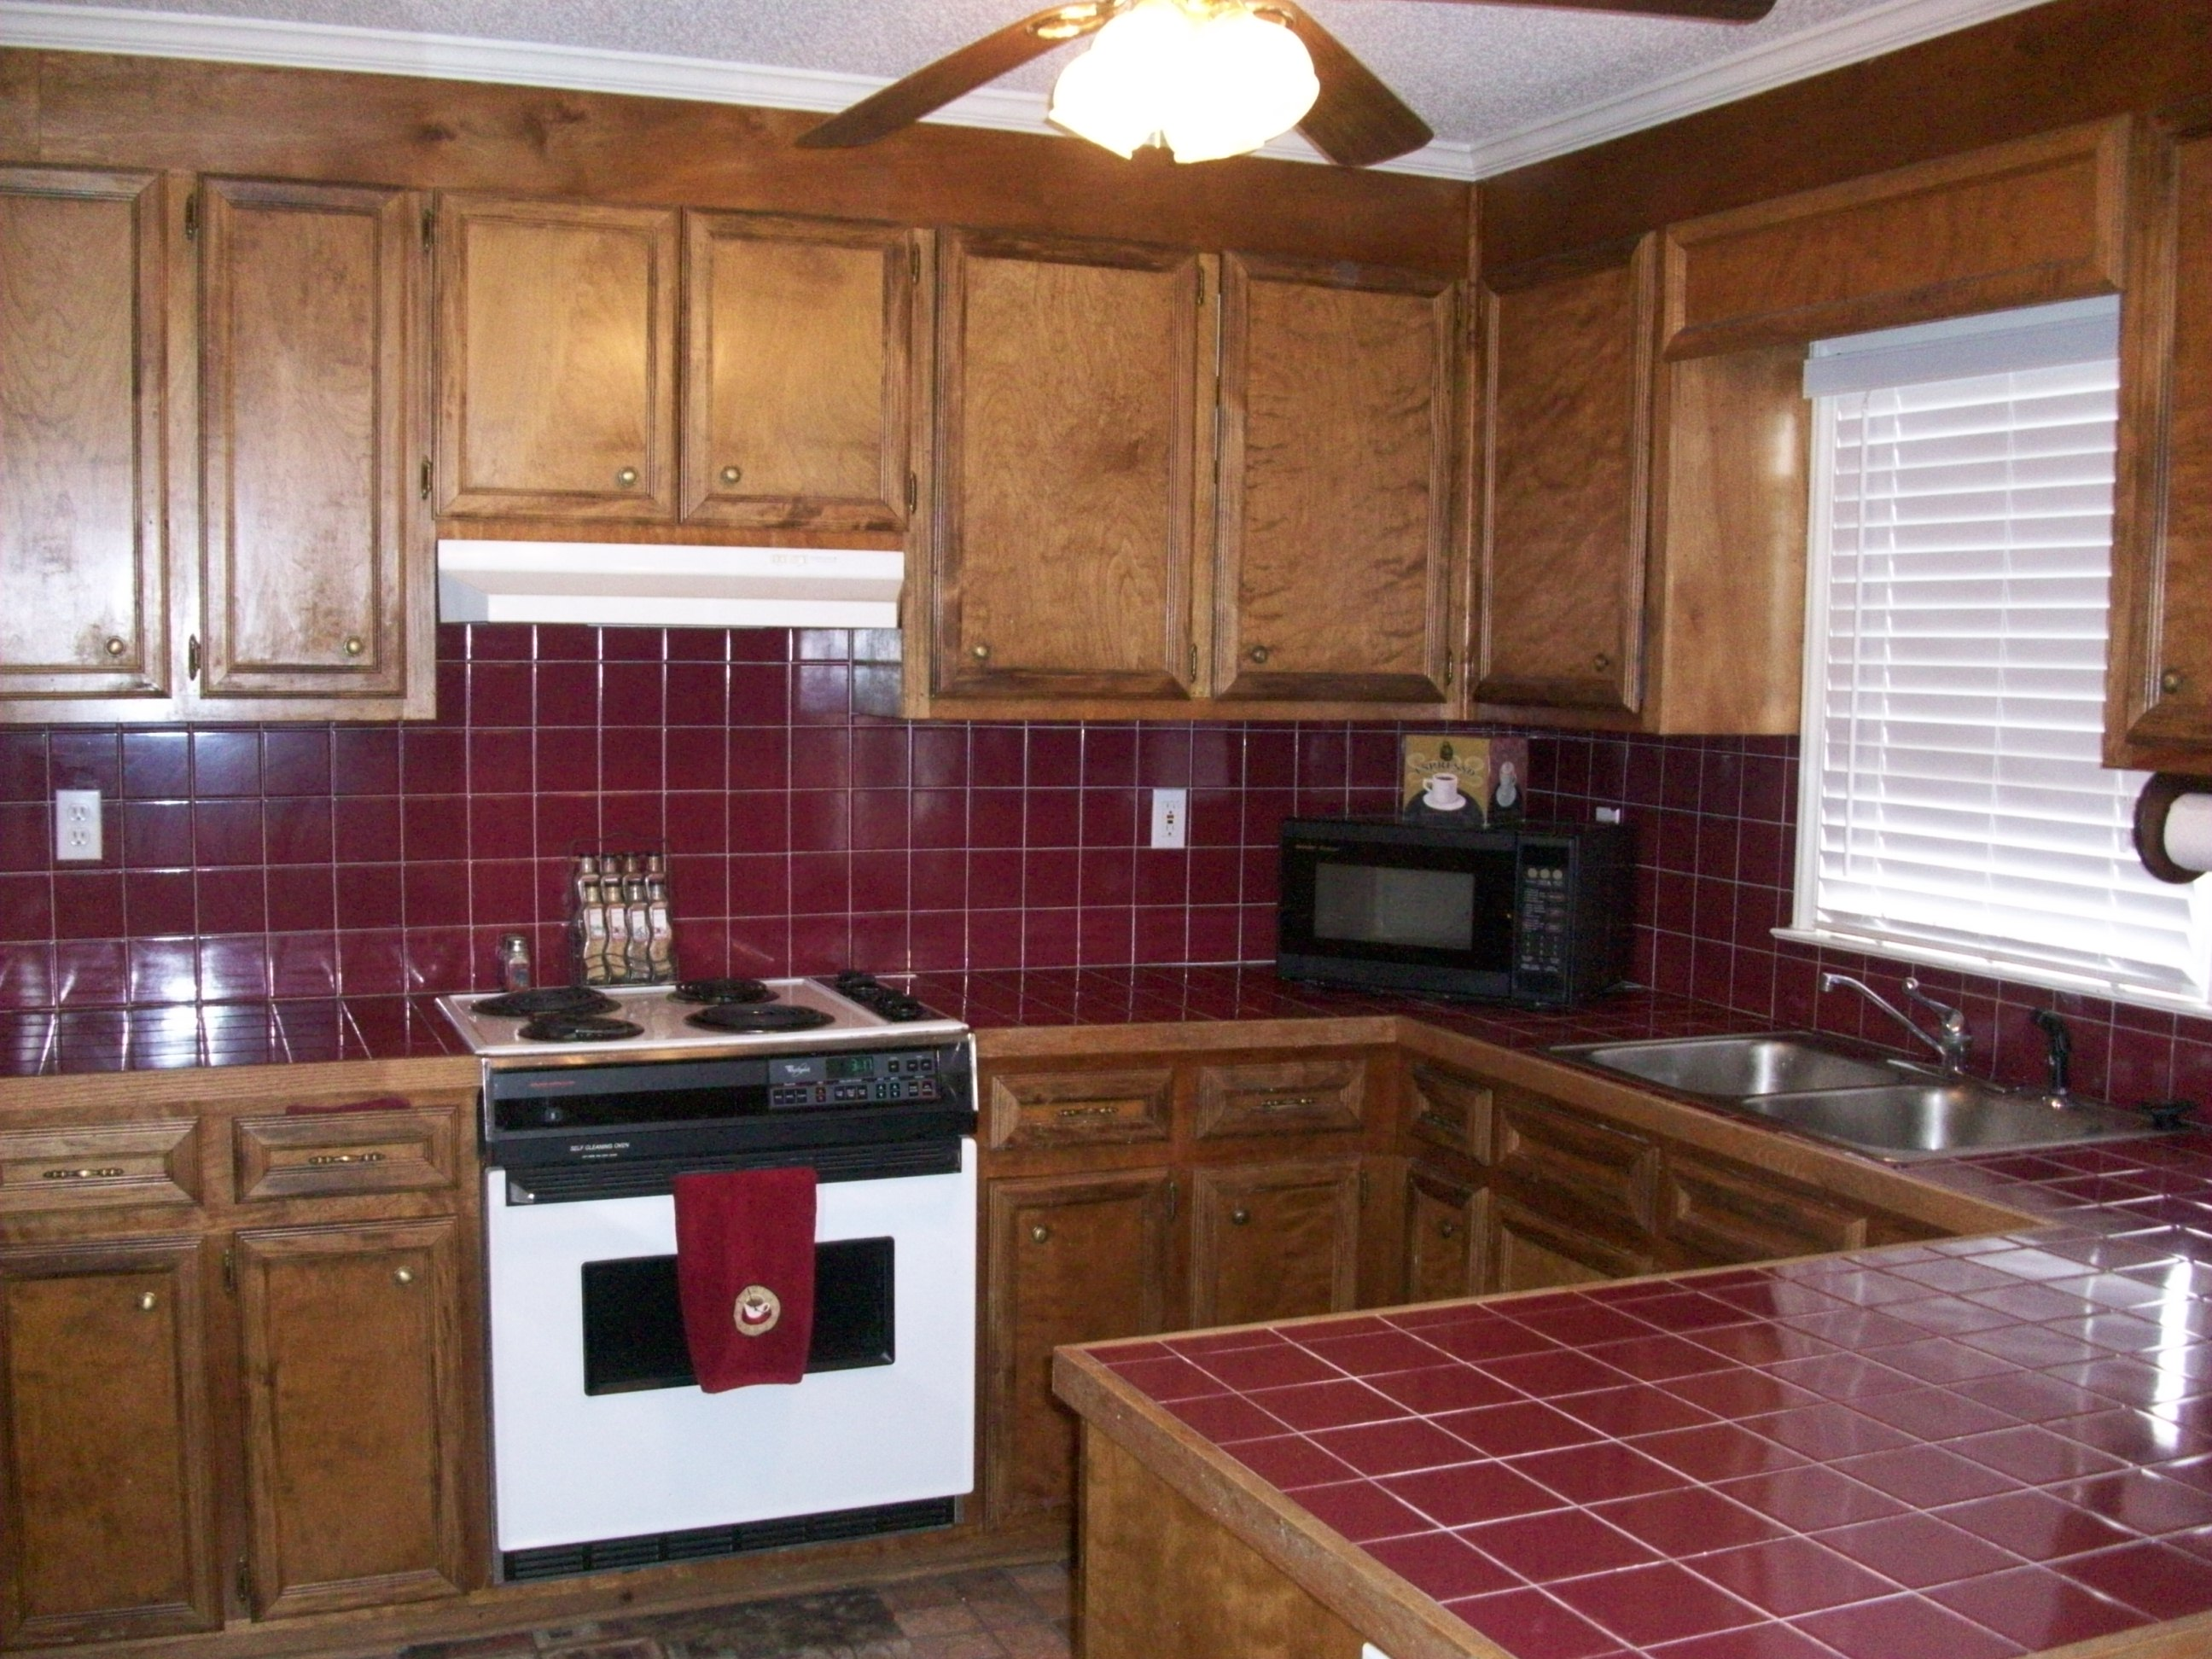 Exceptional townhom near pcmh greenville nc real estate for Hardwood floors greenville nc